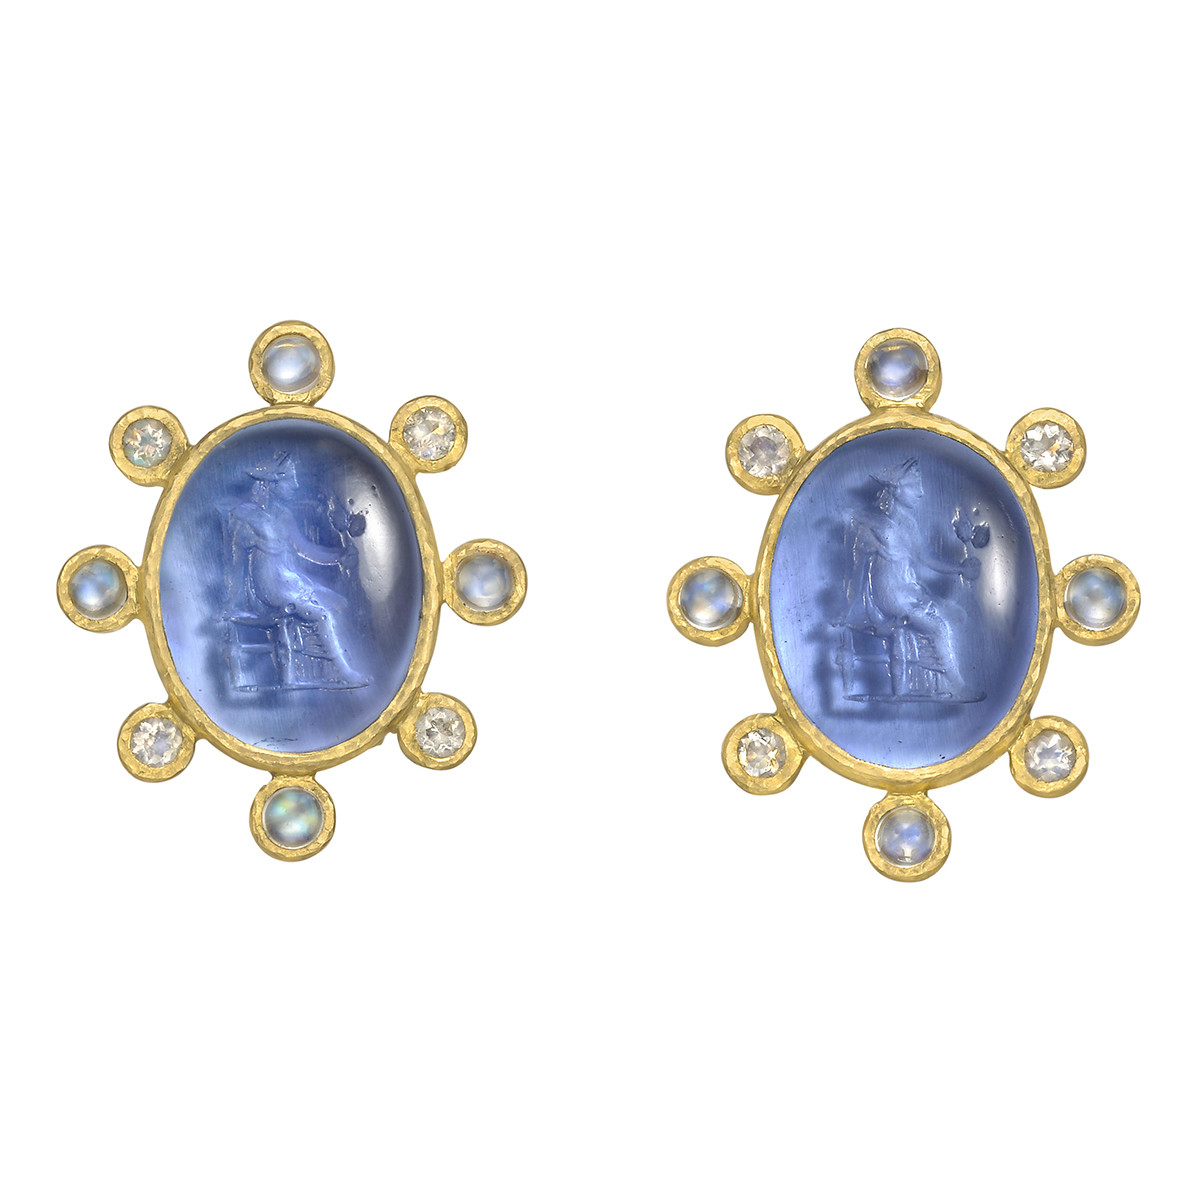 19k Yellow Gold & Venetian Glass Intaglio Earrings